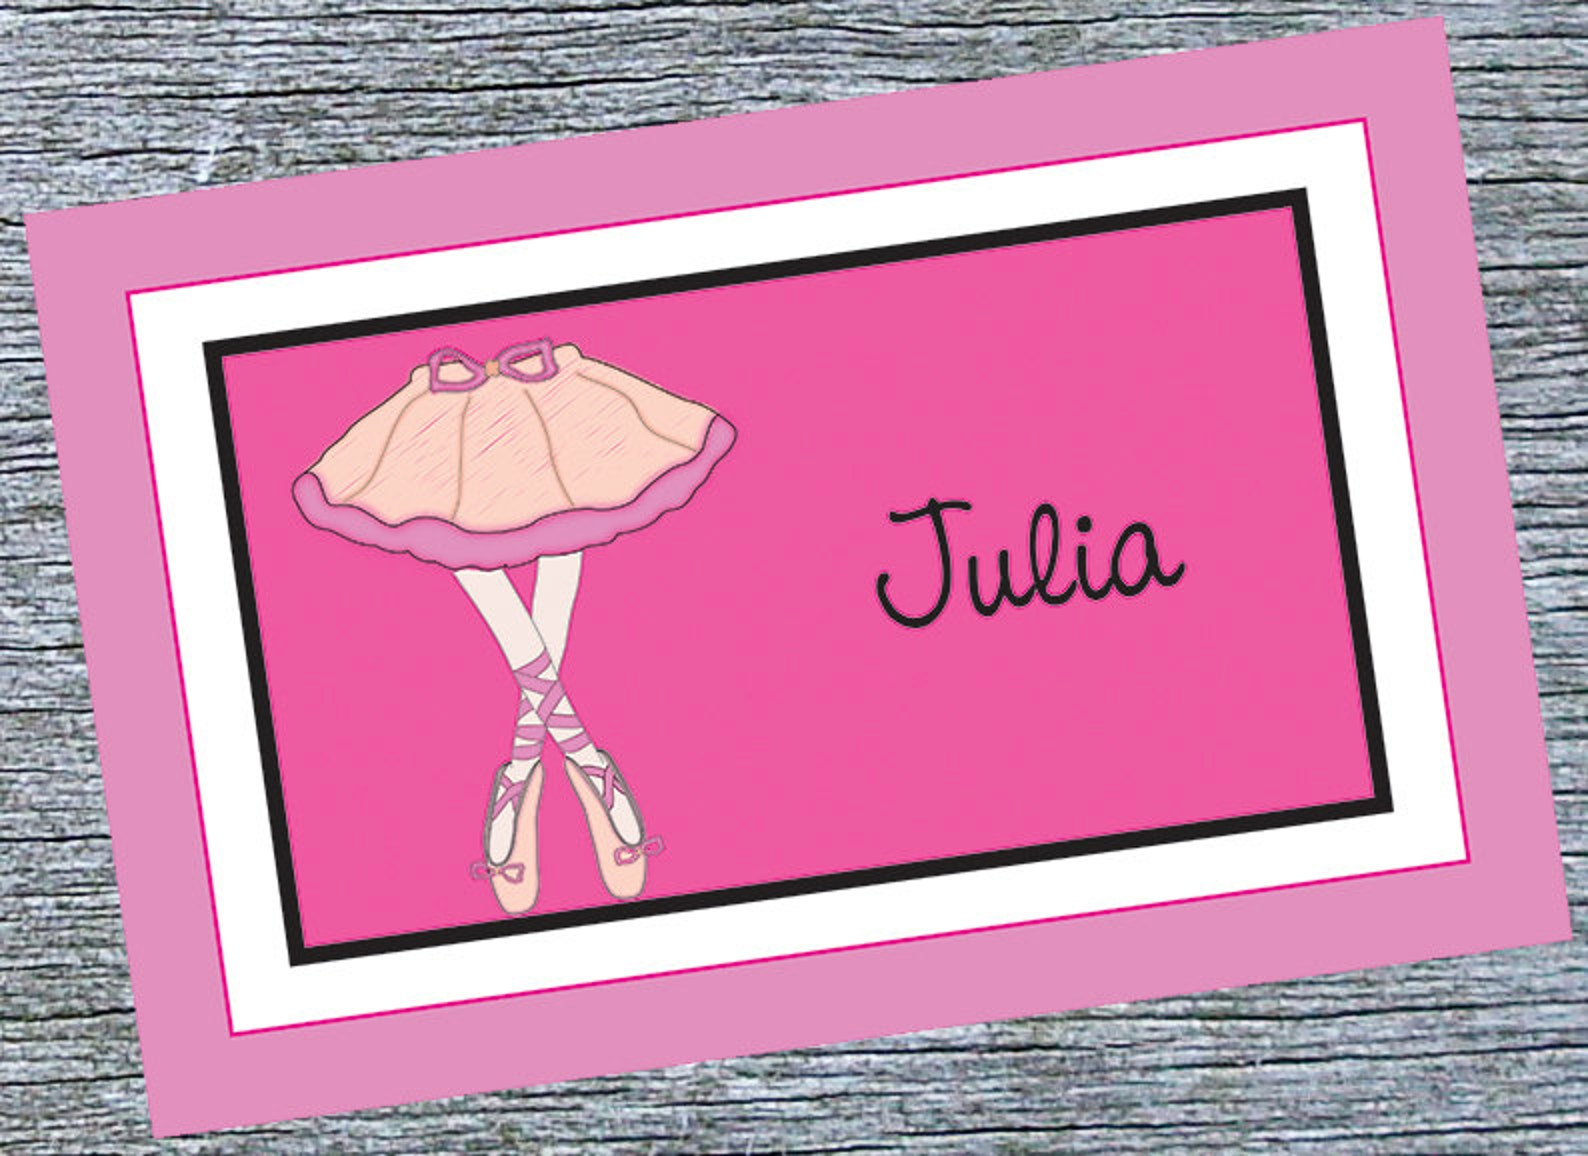 ballerina girl placemat - pink ballet shoes custom girls placemat - custom girls dance placemat - ballet recital gift for ballet